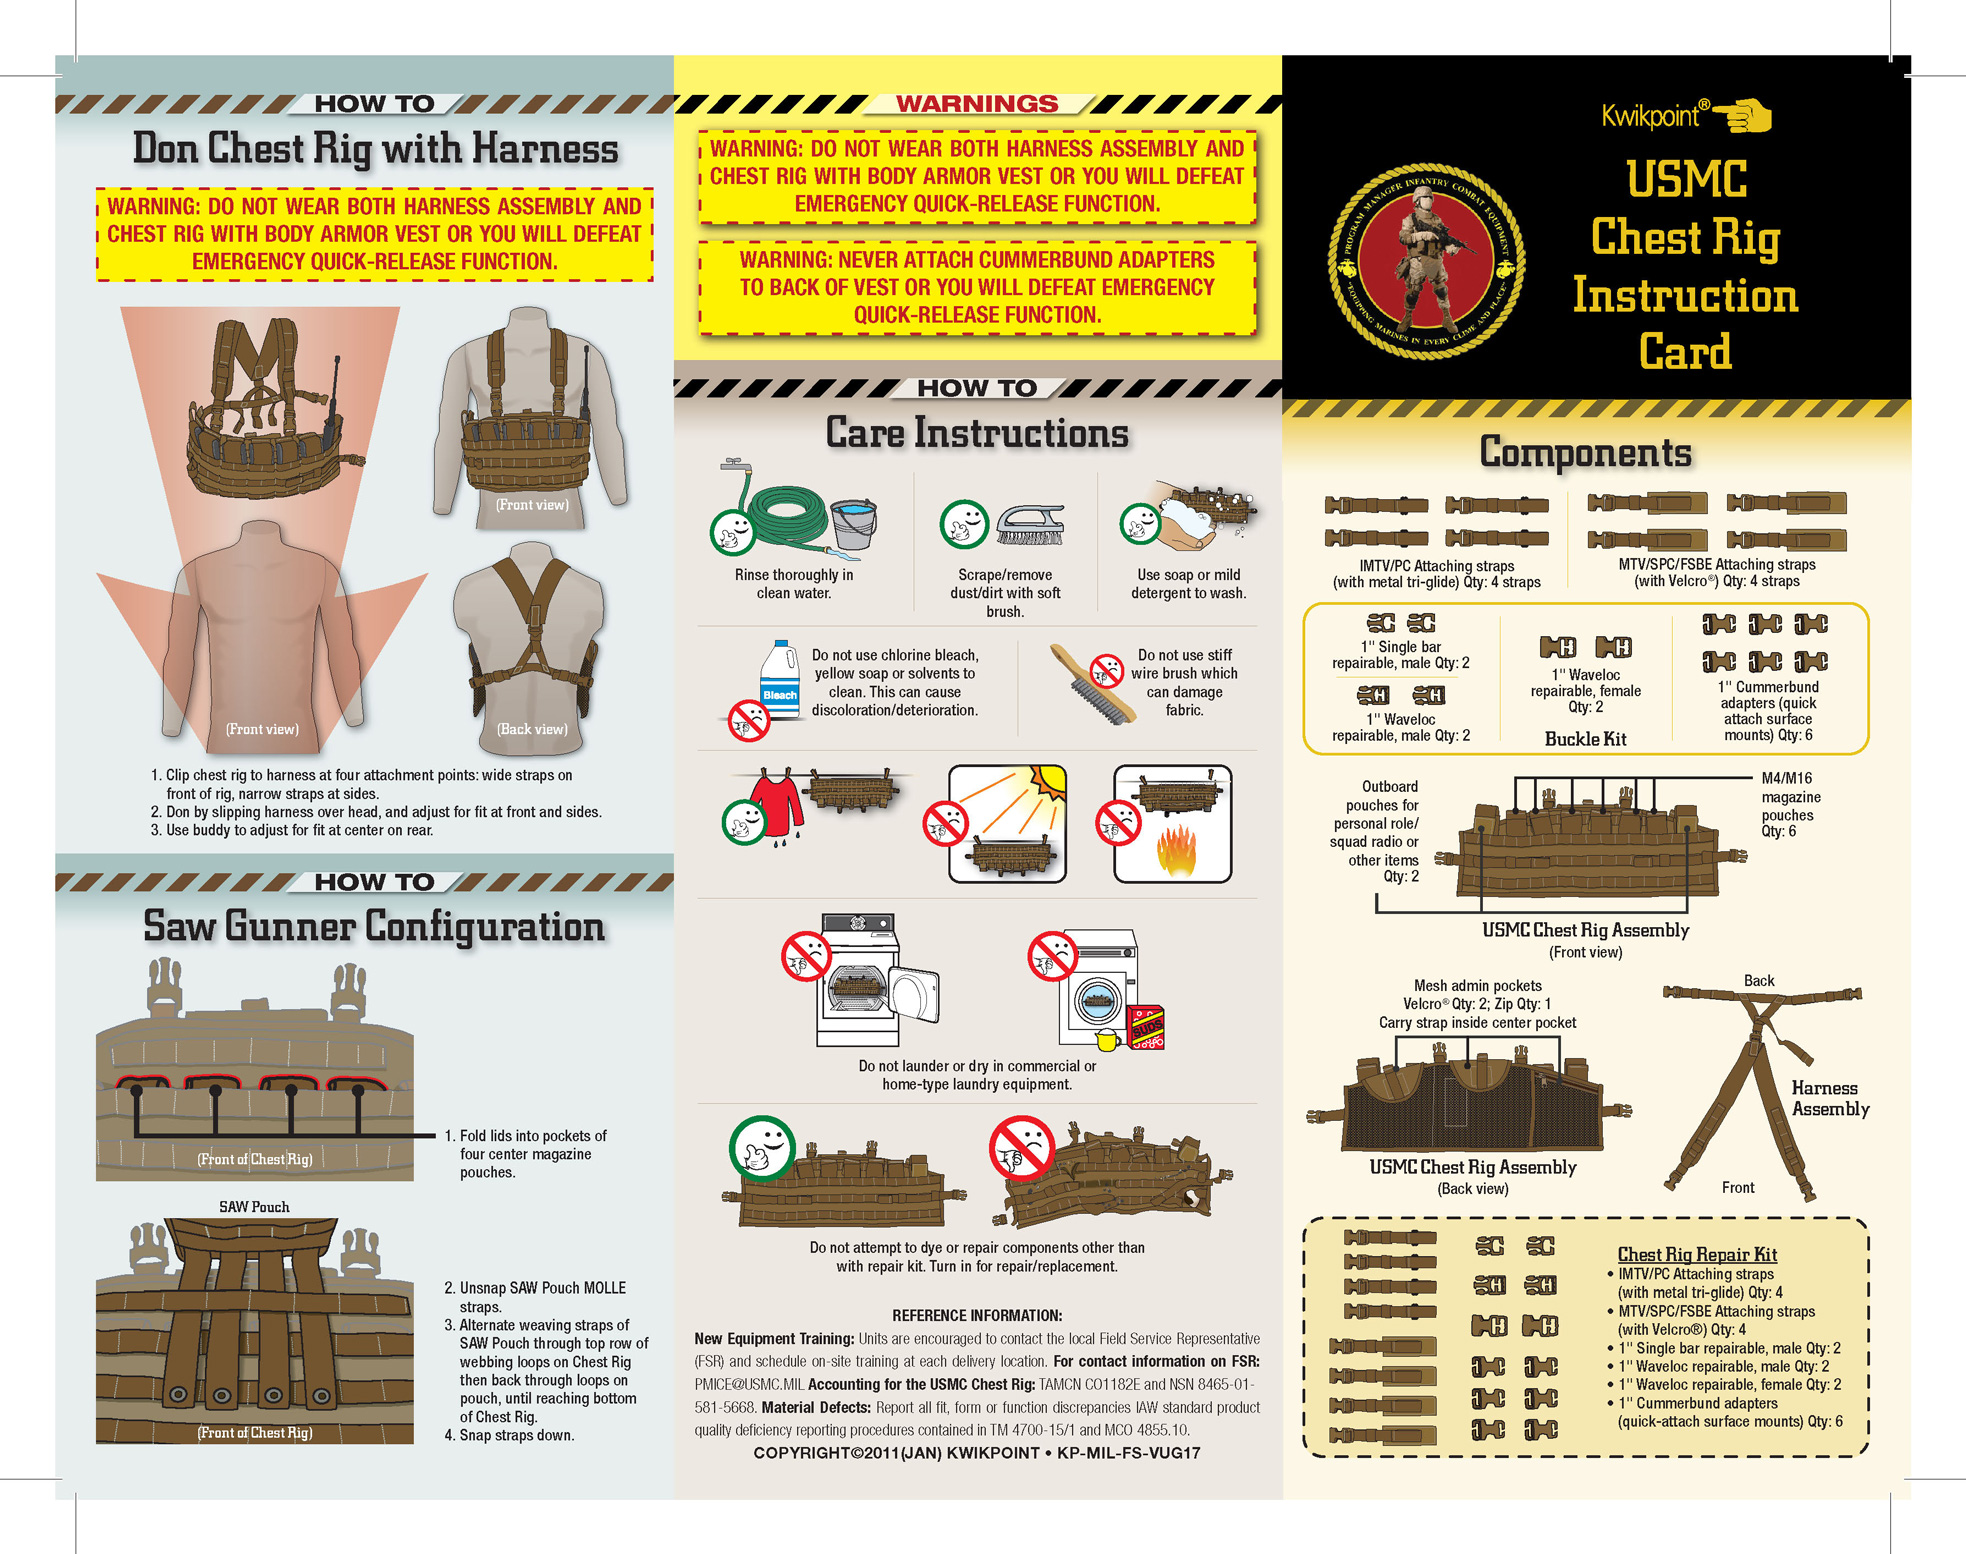 Usmc Chest Rig Instruction Card Kwikpoint Com Kwikpoint